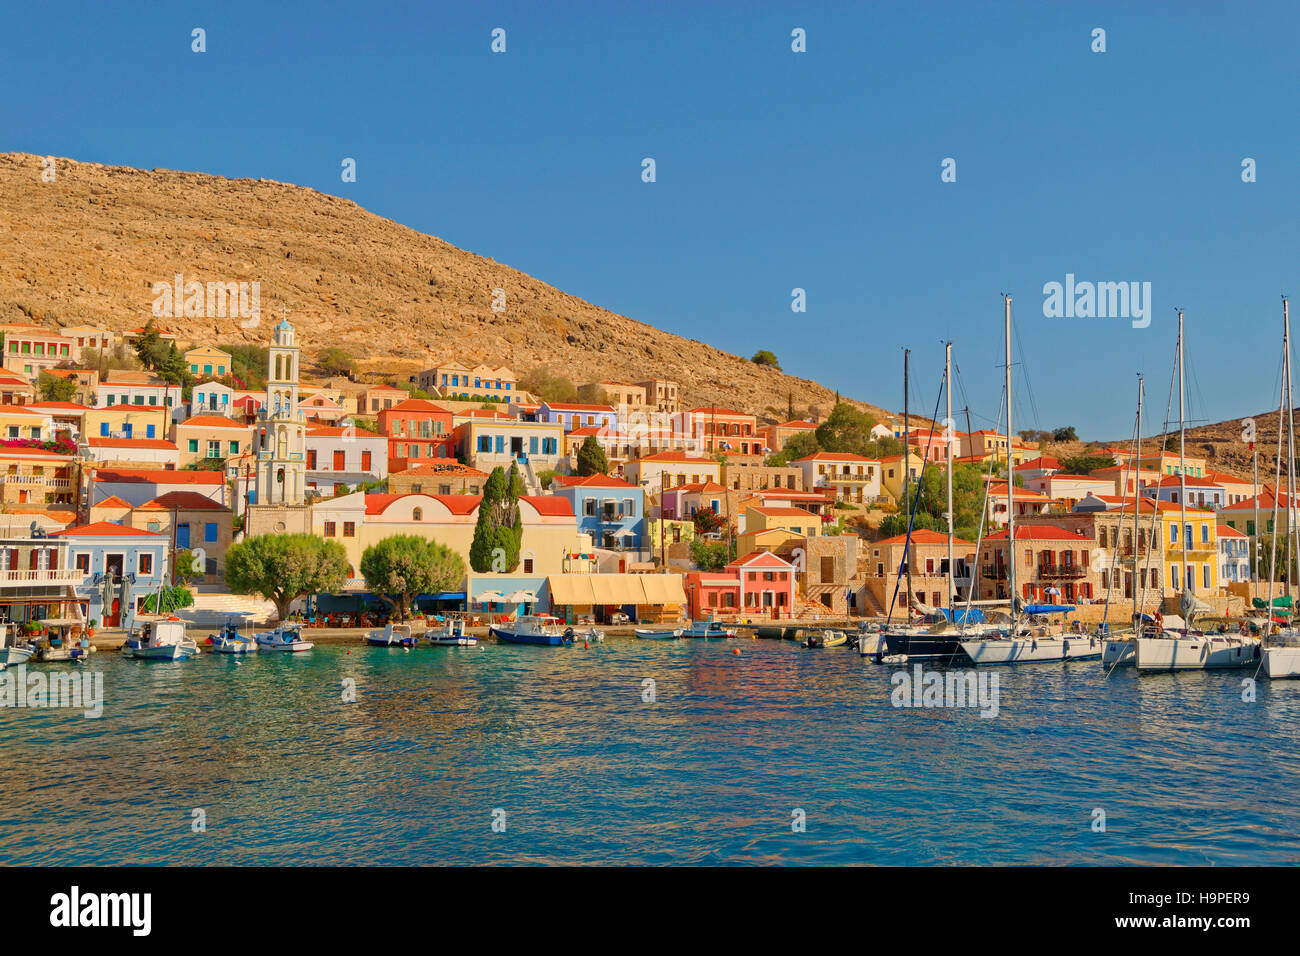 Chalki town on the Greek island of Chalki situated off the north coast of Rhodes in the Dodecanese Island group, - Stock Image